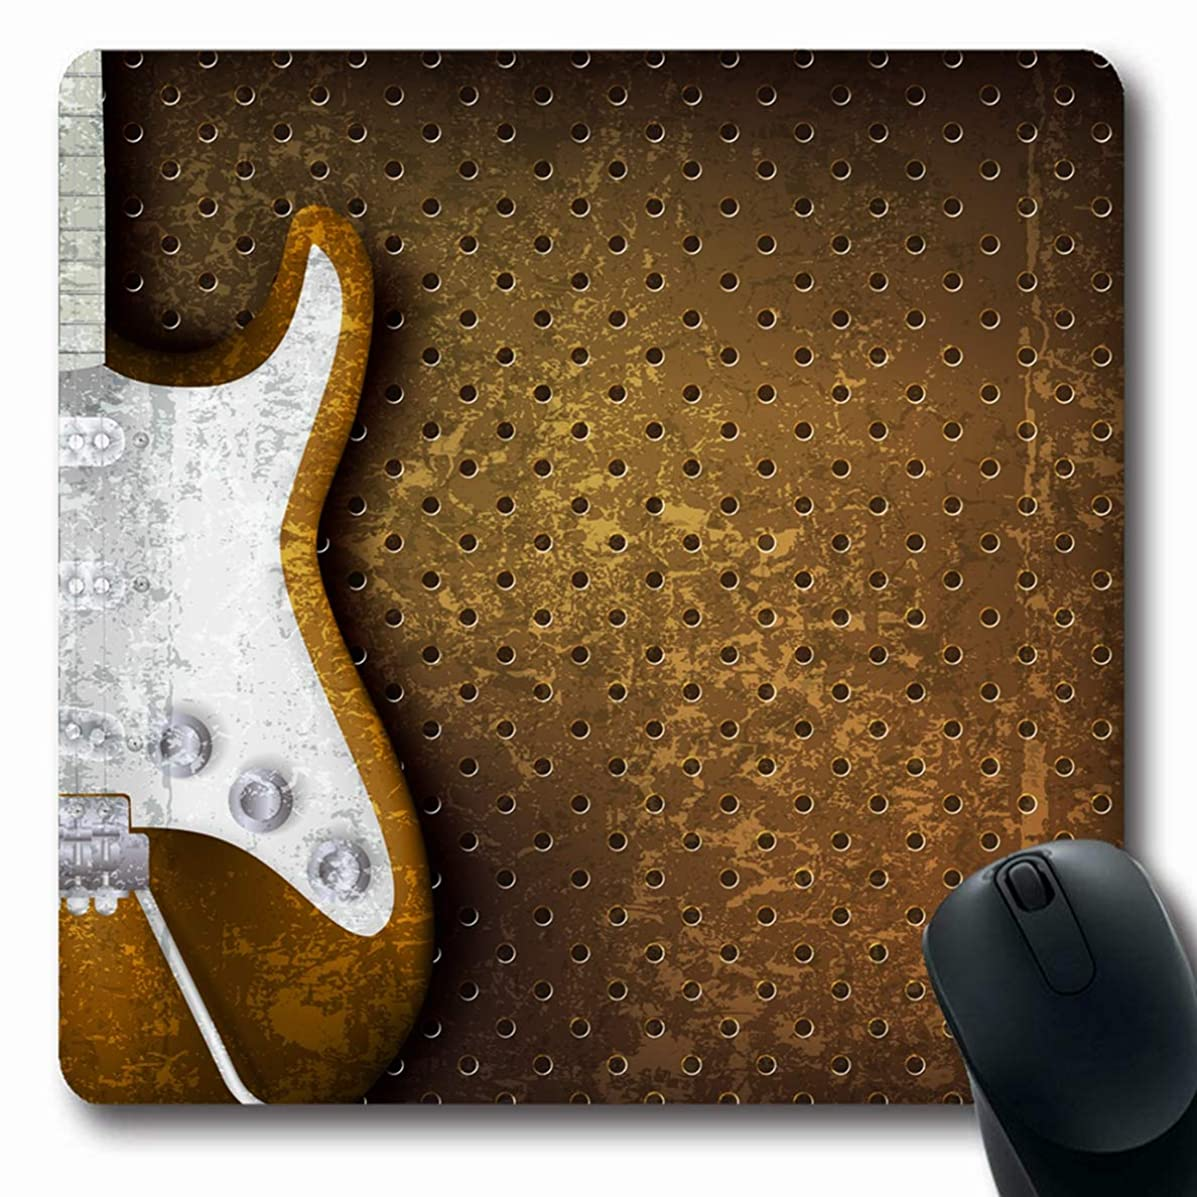 Ahawoso Mousepad Oblong 7.9x9.8 Inches Musical Rock Abstract Brown Electric Guitar Music Grunge Classic Ivory Retro Jazz Culture Design Art Mouse Pad Non-Slip Rubber for Notebook Laptop PC Computer